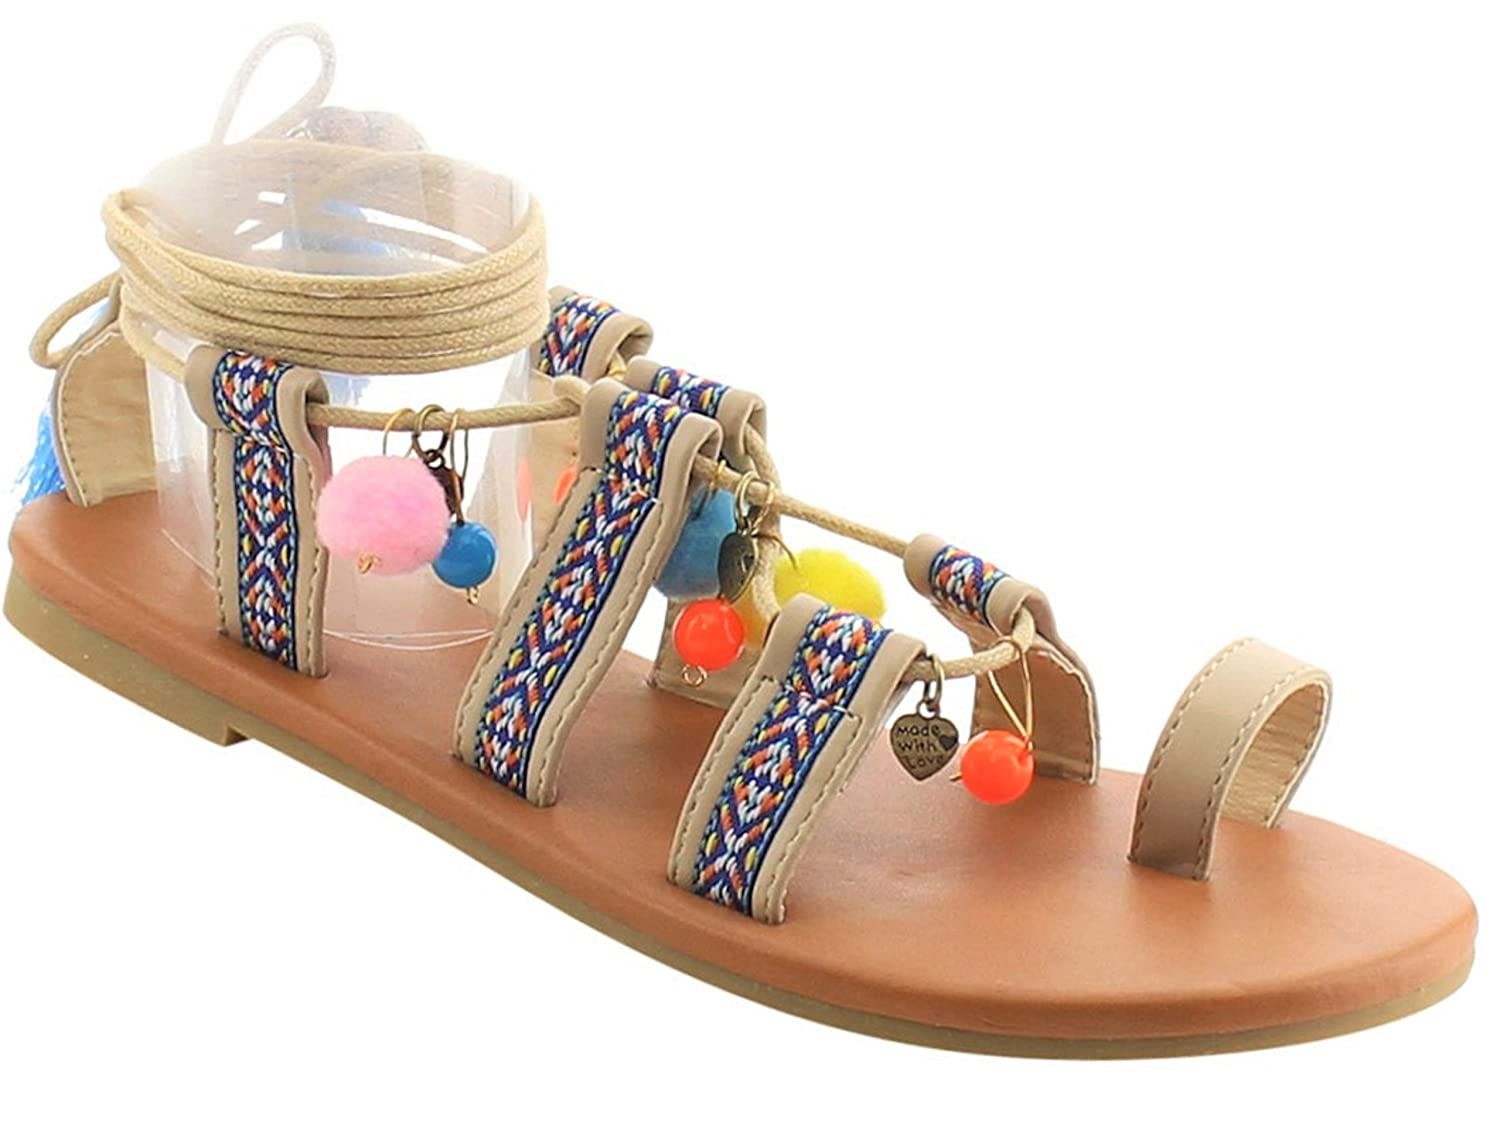 93d82dfdf87 Image BDshoes Gladiator Strappy Flat Pom Pom Casual Opal Sandal for Women  Girls Clearance Sale (